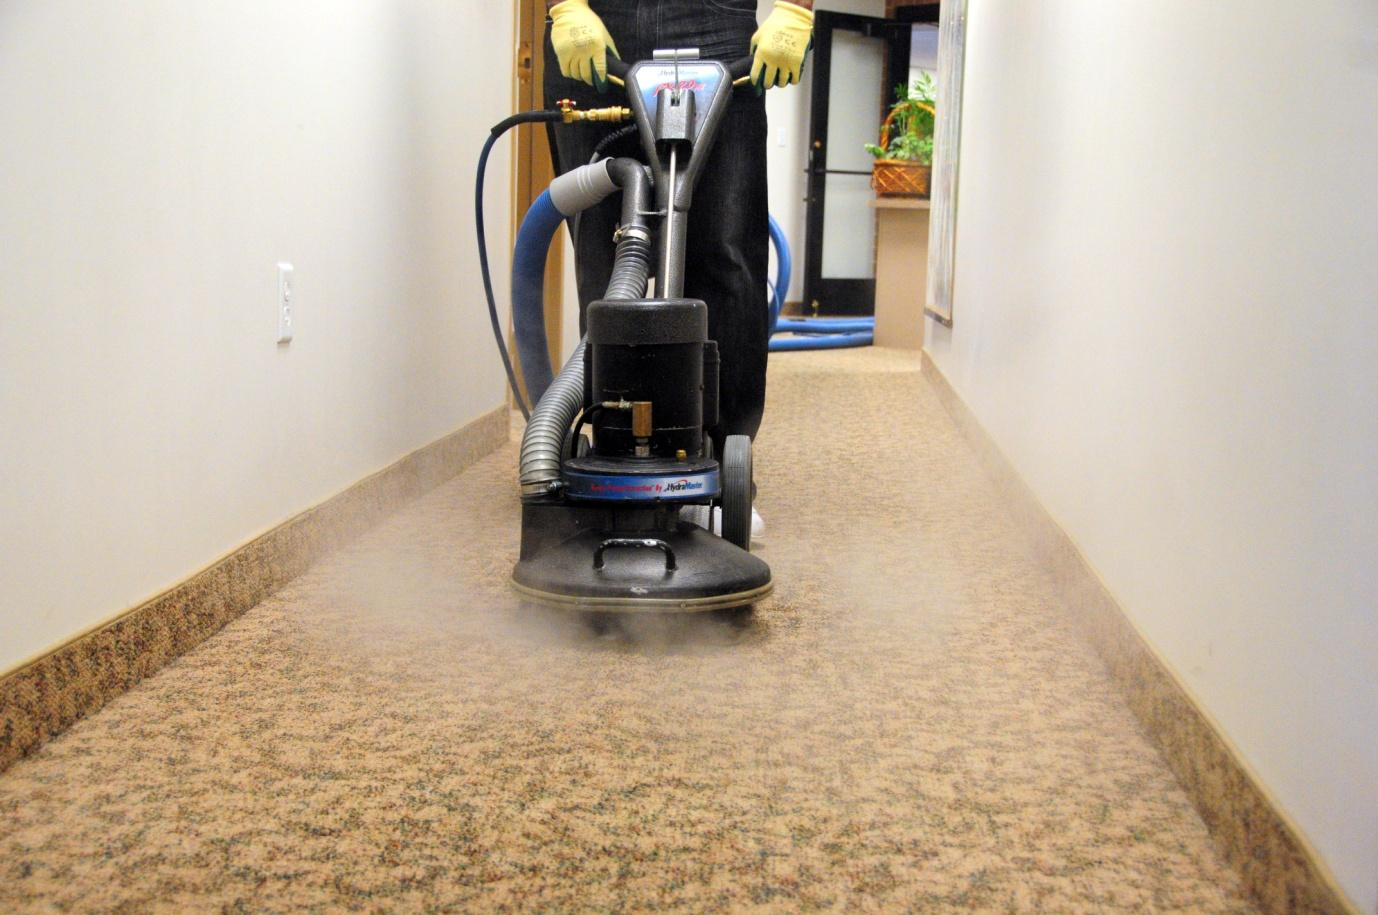 The Surrey Carpet Cleaning Service